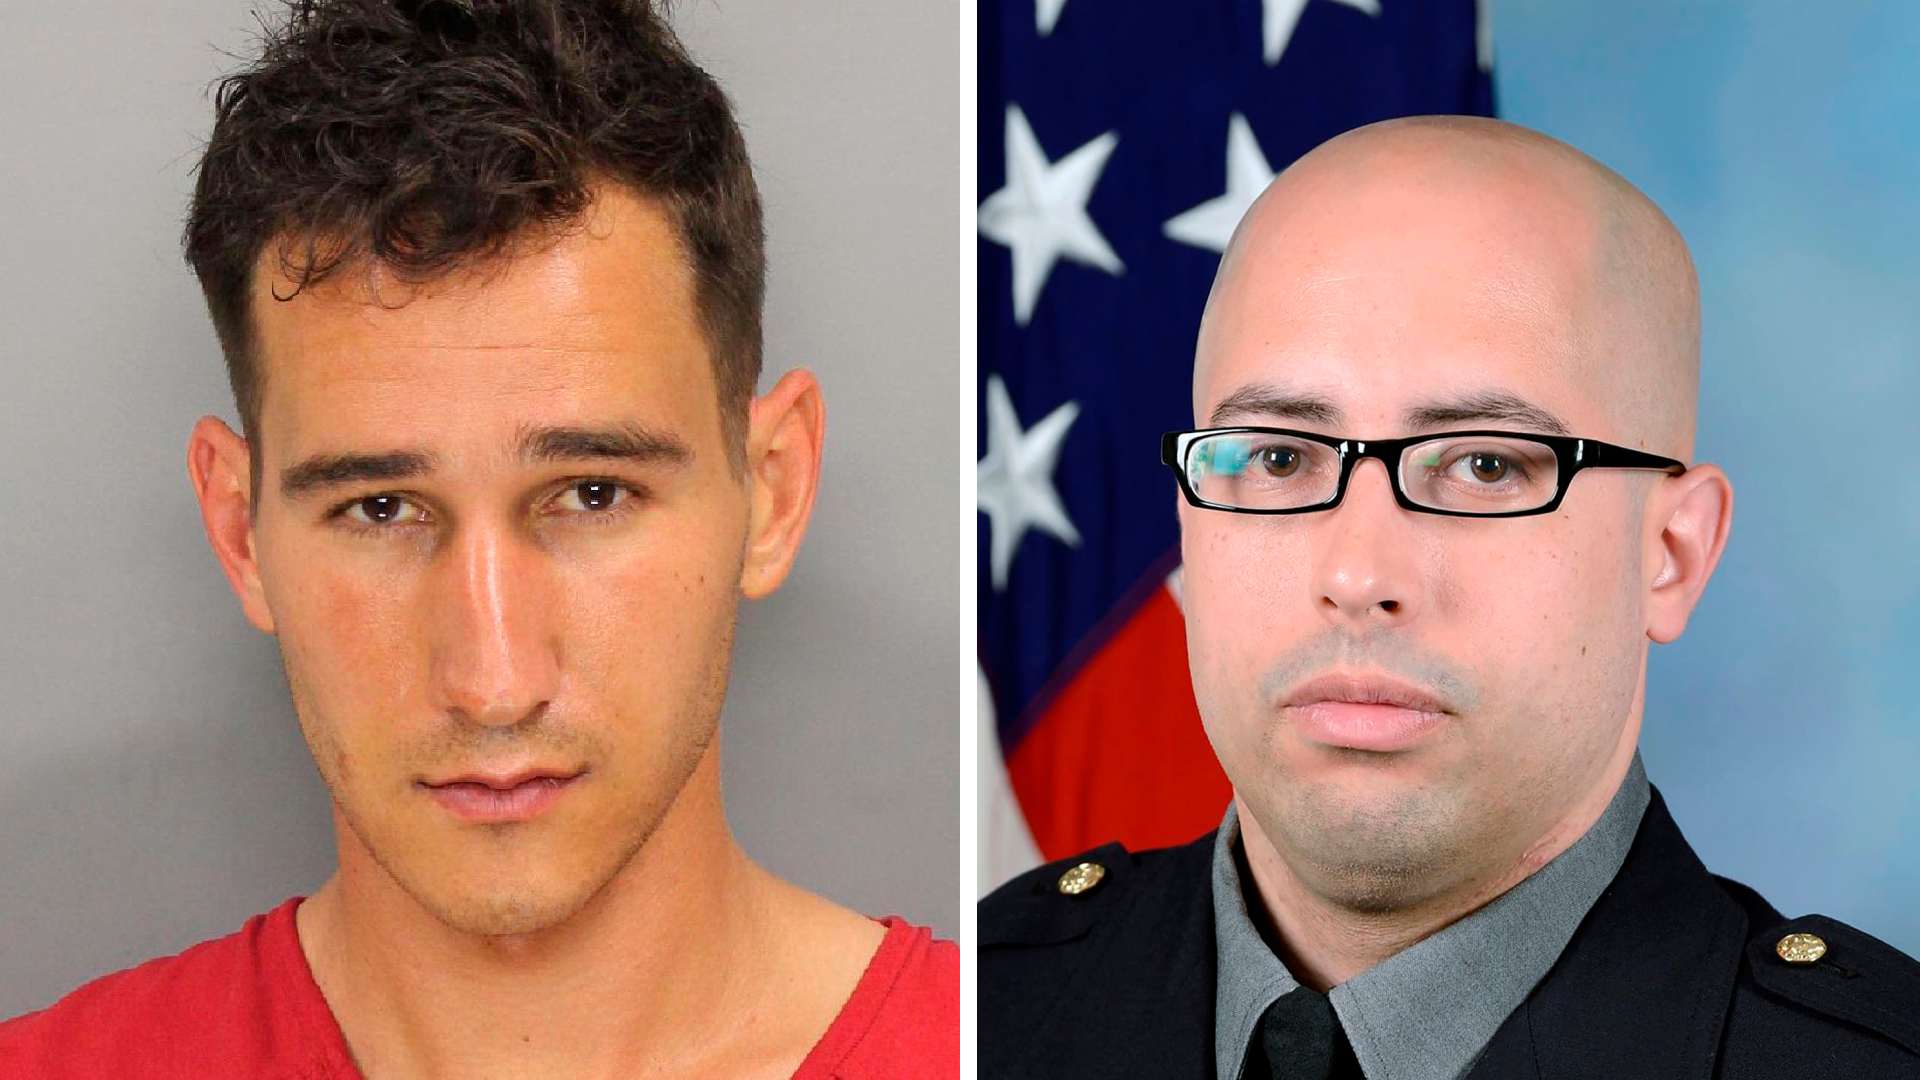 This April 2021 image provided by the Cobb County Sheriff's Office shows a booking photo of Austin Williams Lanz. On the right, an undated photo provided by the Pentagon Force Protection Agency shows Pentagon Police Officer George Gonzalez.